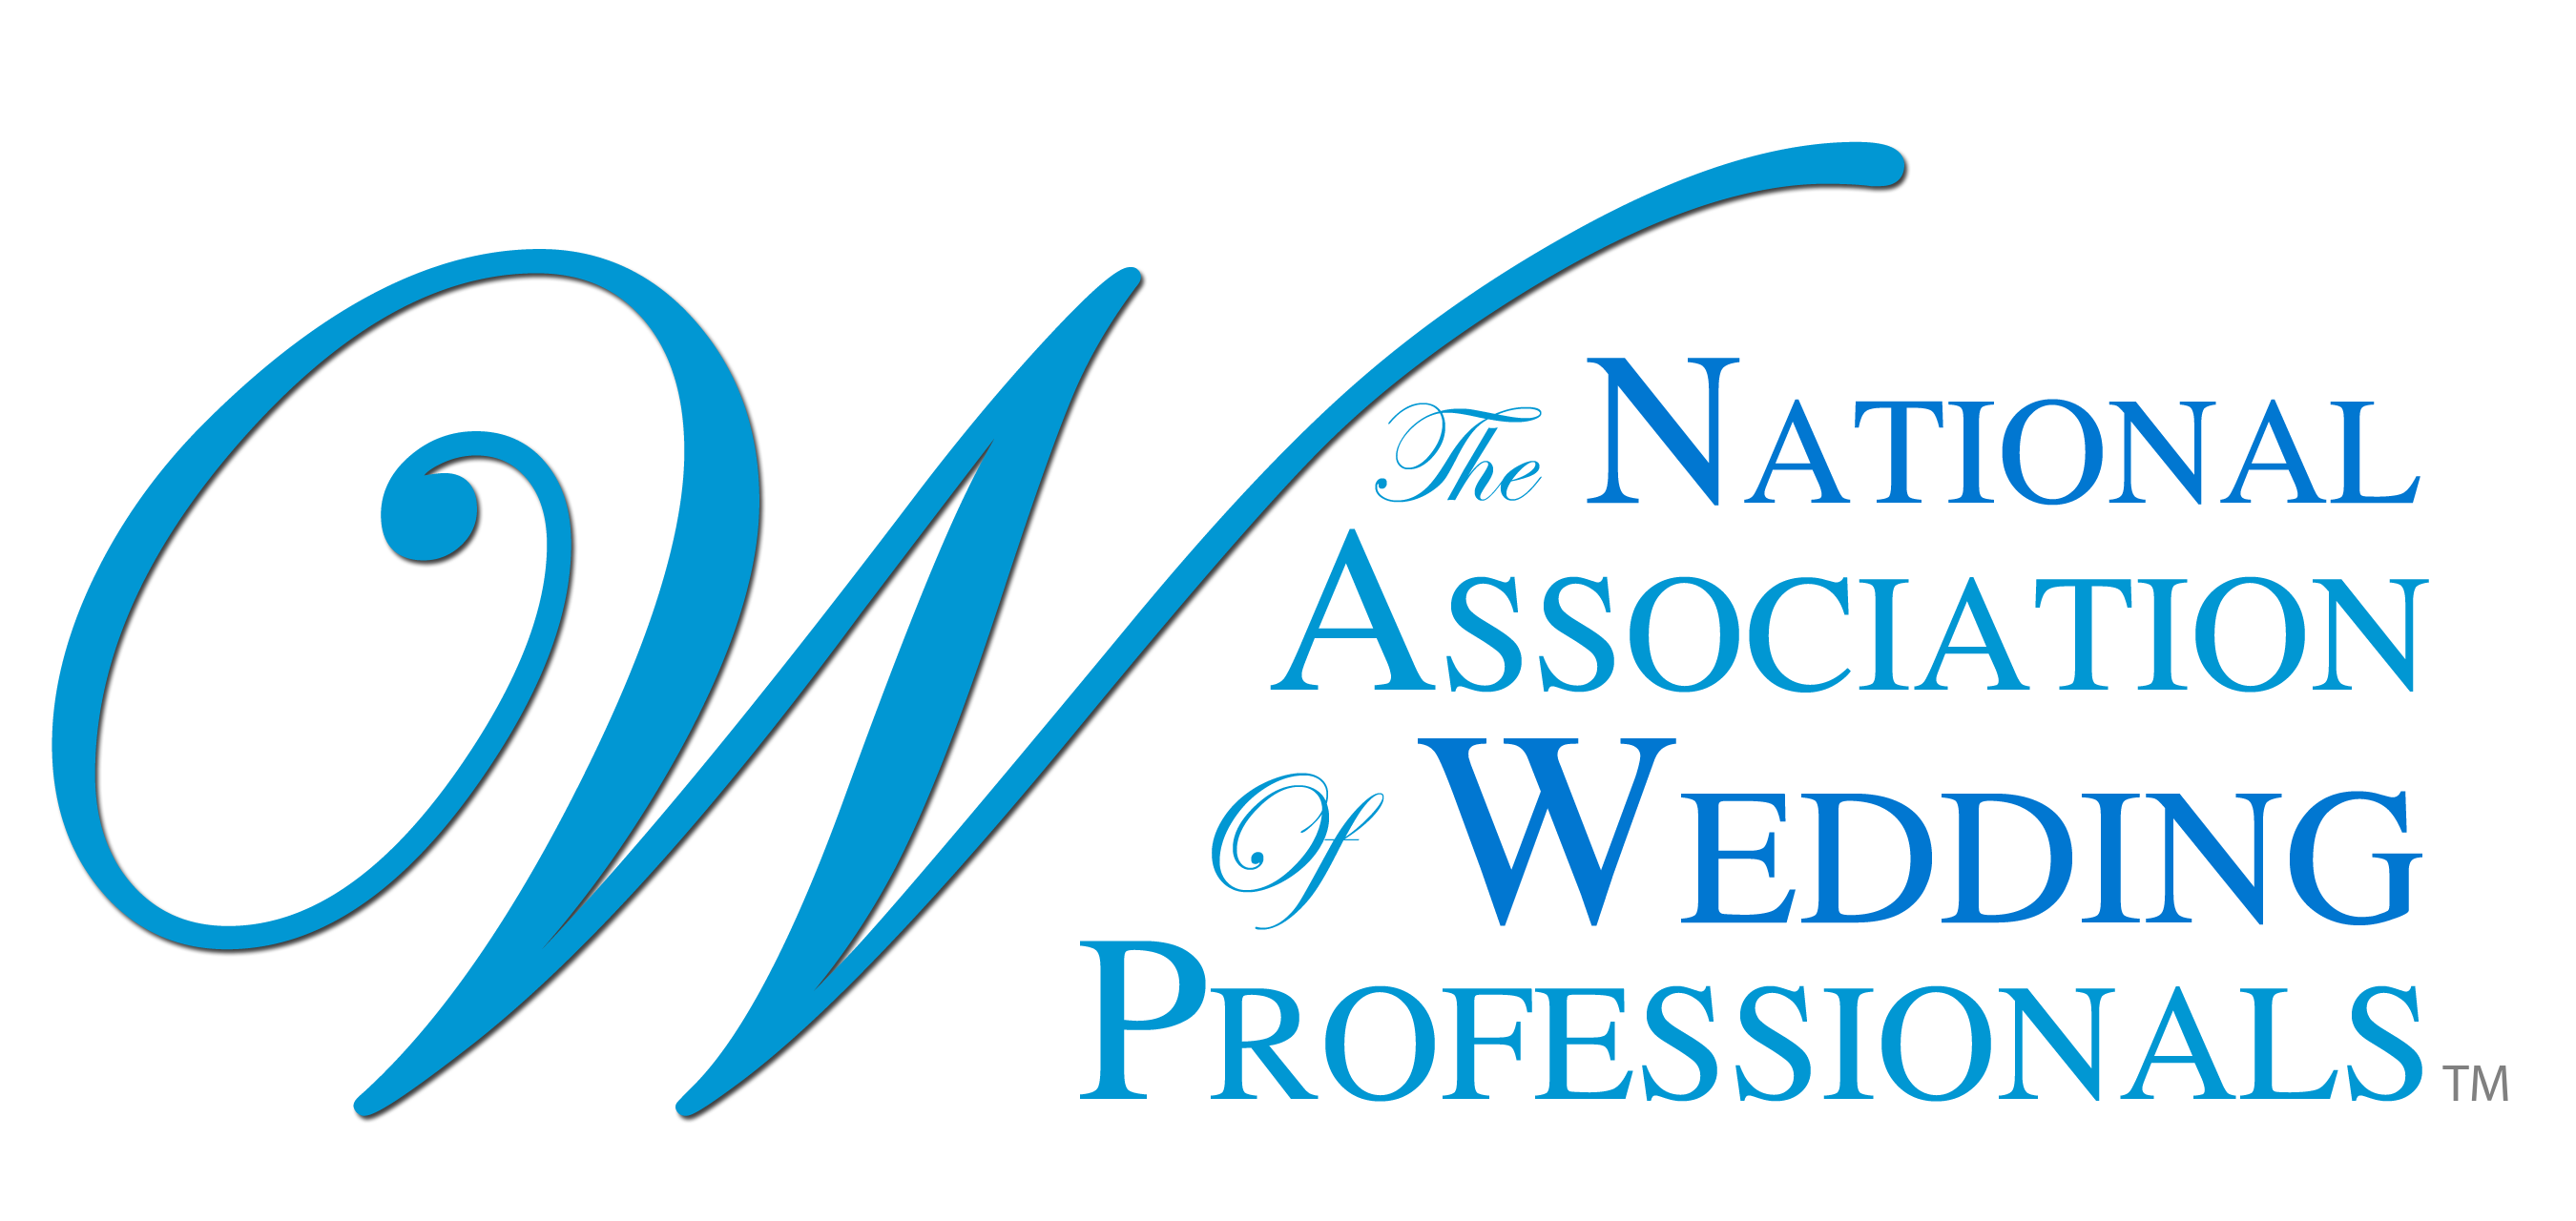 National Association Of Wedding Professionals Conference. Divorce Attorneys In Orlando Fl. Cost Accounting Classes Bryans Car Corner Okc. International Affairs Online Degree. Mattress World Indianapolis U Of H Nursing. Performance Kia Everett Wa Buying 800 Numbers. College For Computer Engineering. Self Install Home Alarm Systems. Sheet Feed Document Scanner We Tv On Uverse